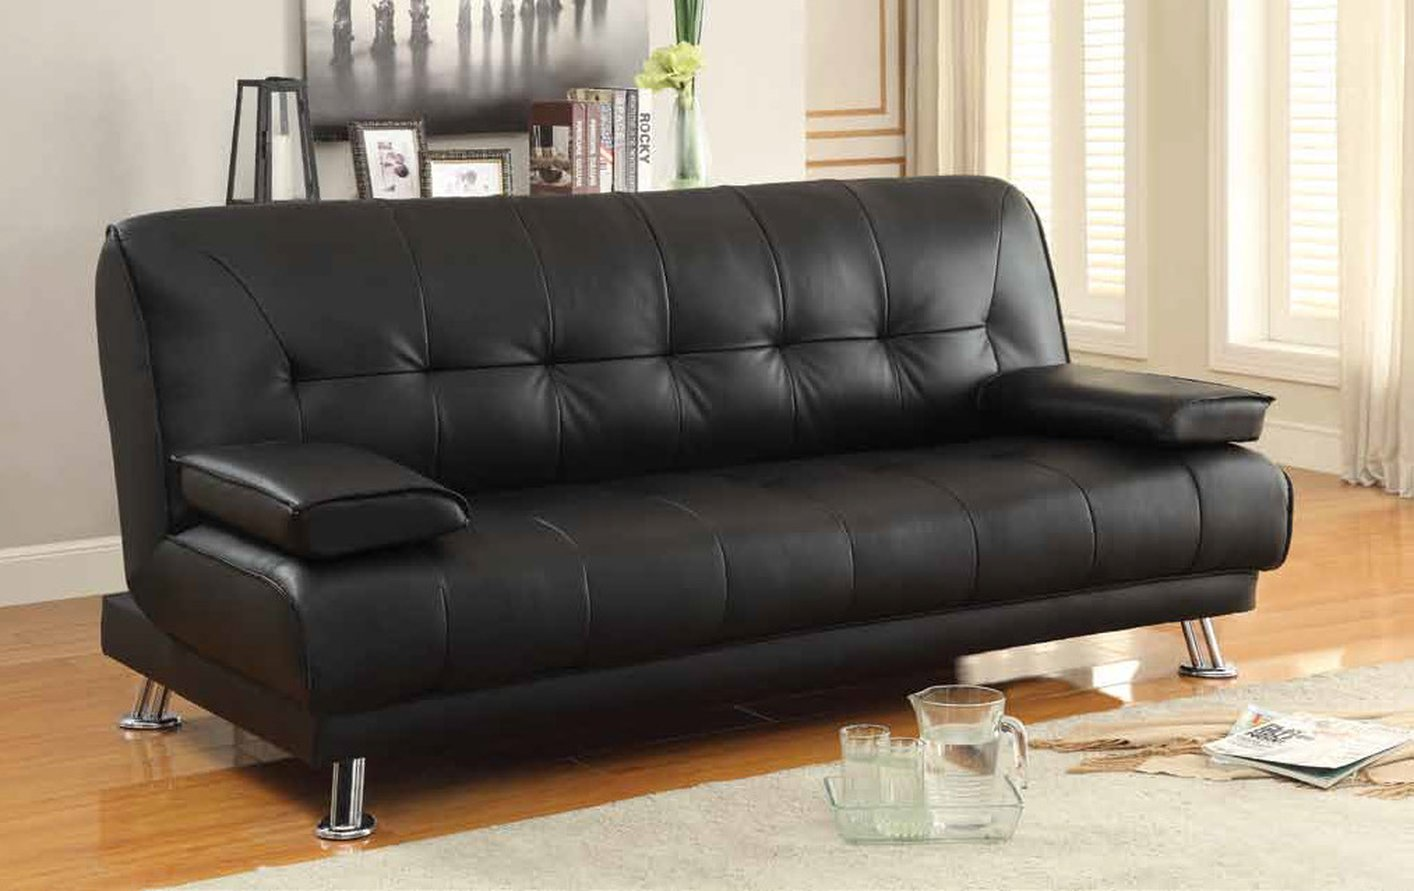 Coaster 300205 Black Leather Sofa Bed Steal A Sofa